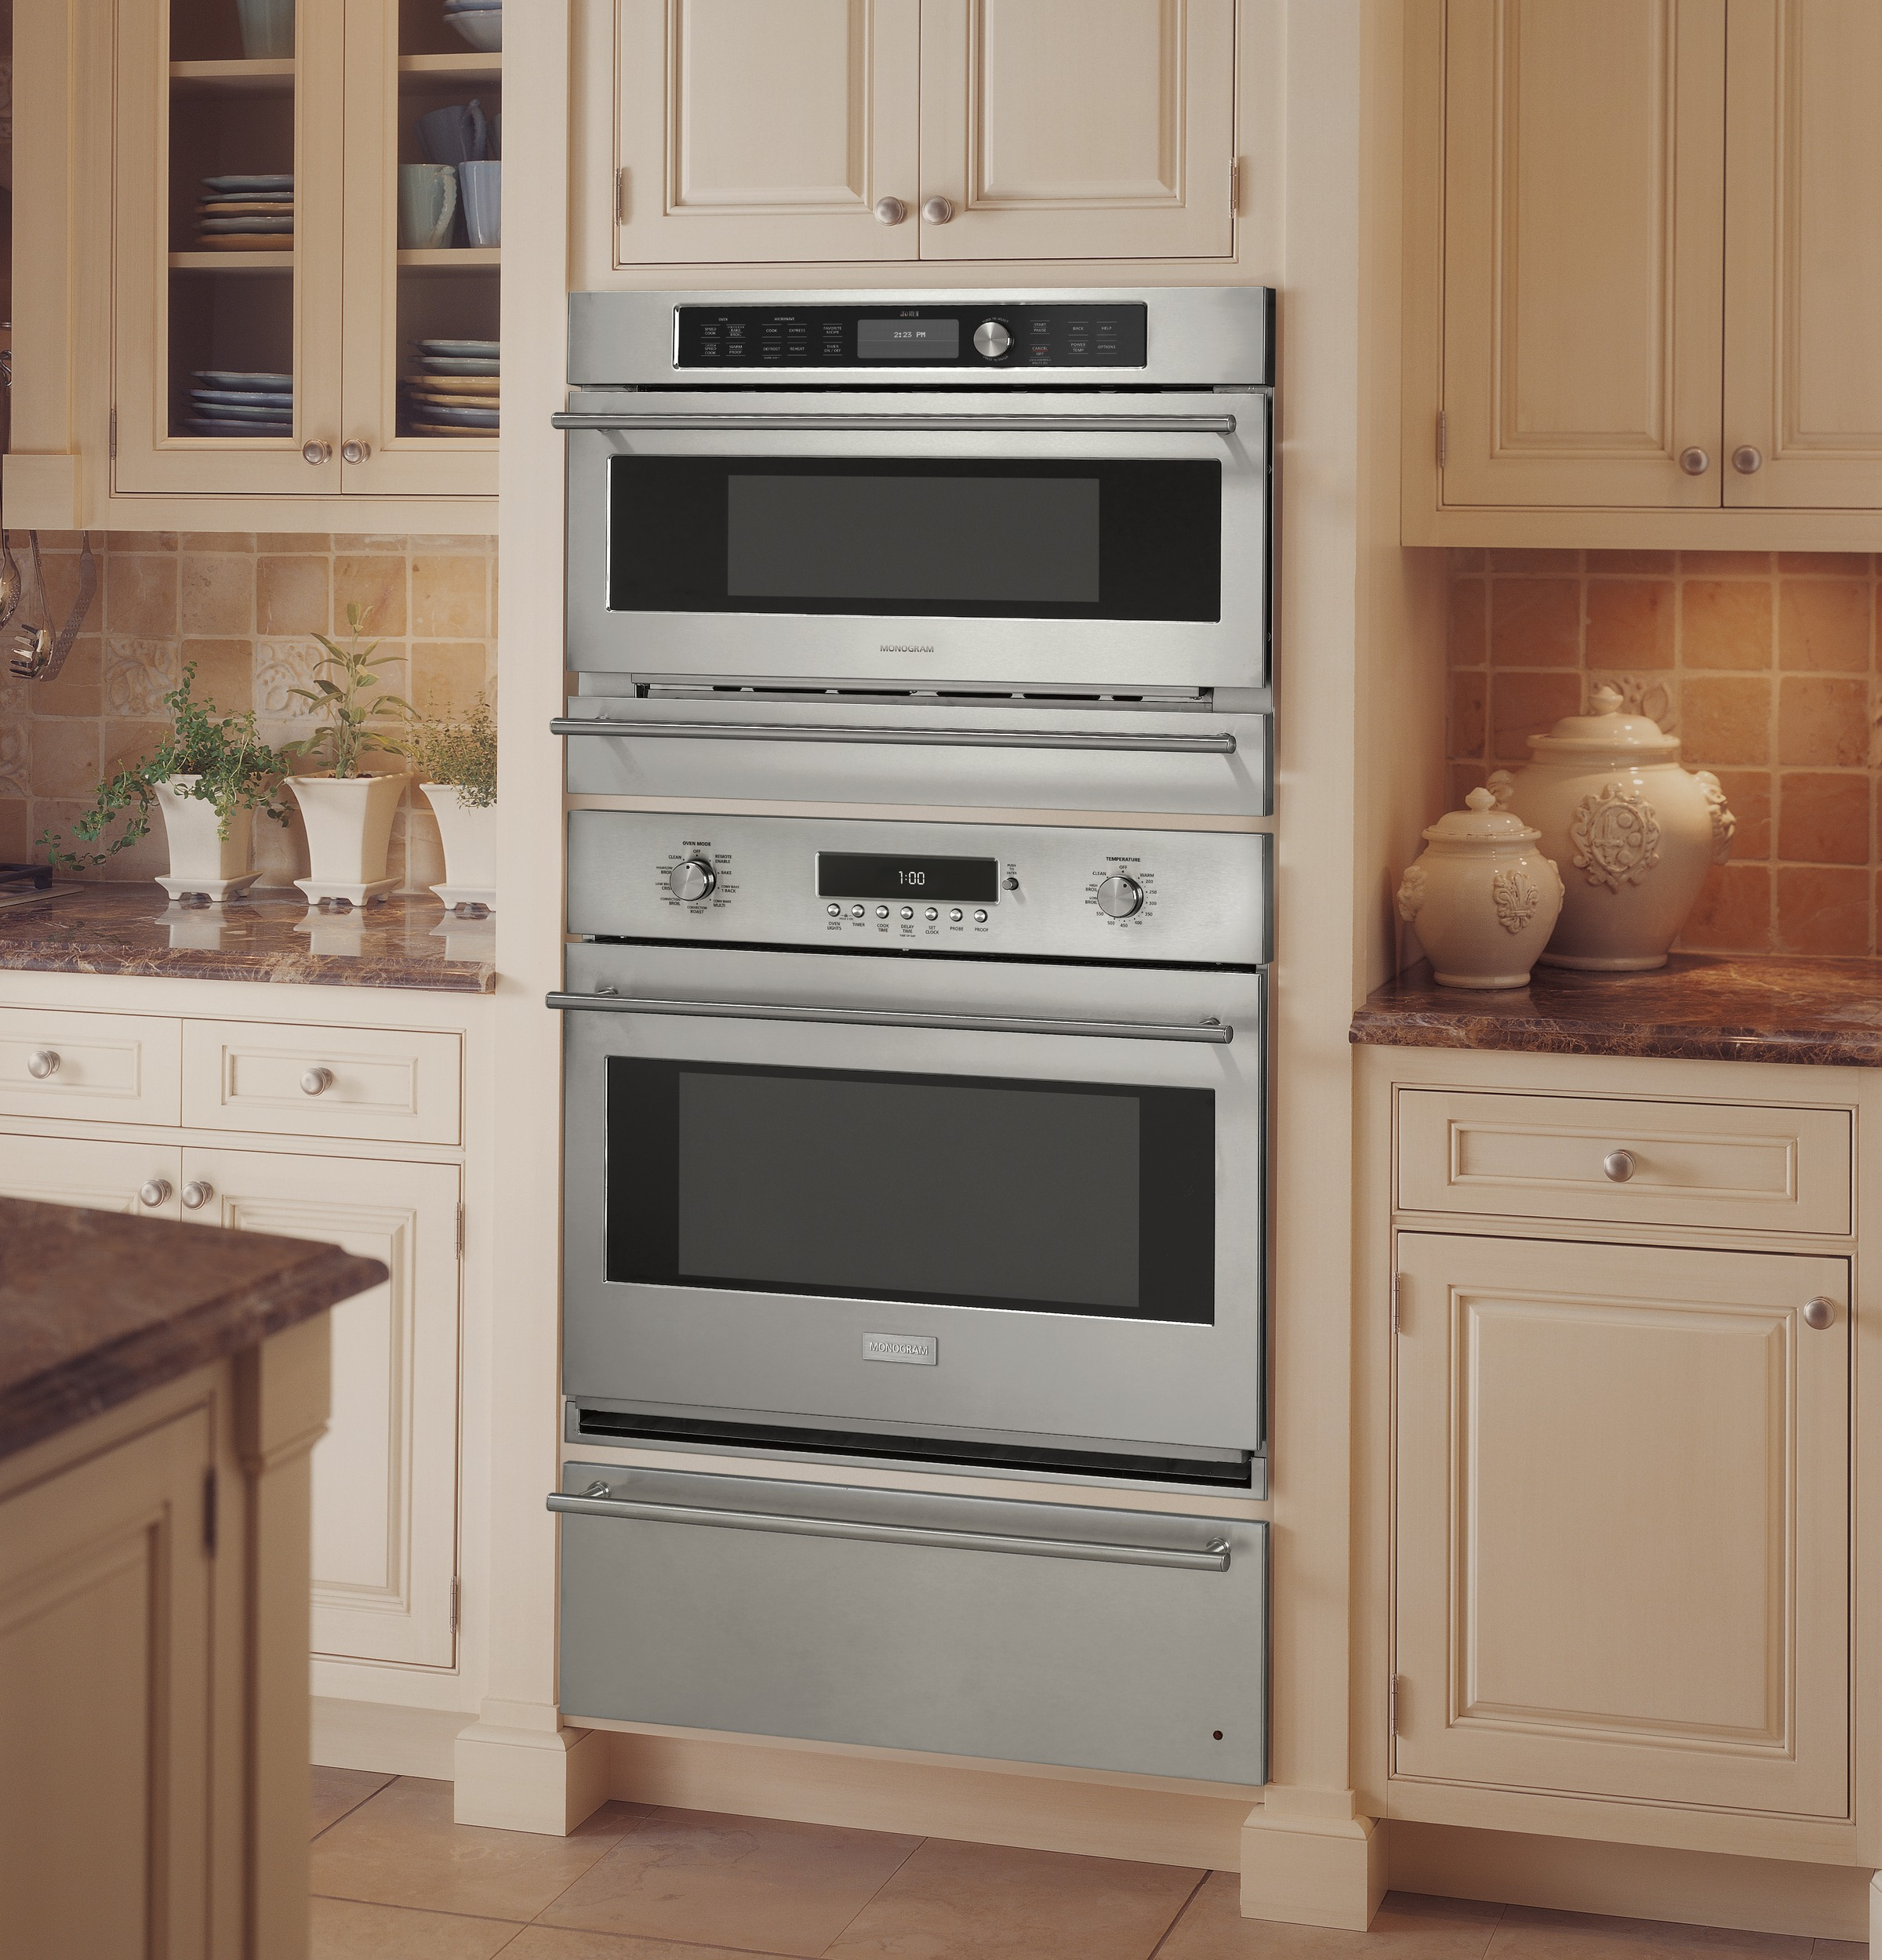 model: zsc2201jss | monogram built-in oven with advantium� speedcook  technology- 240v